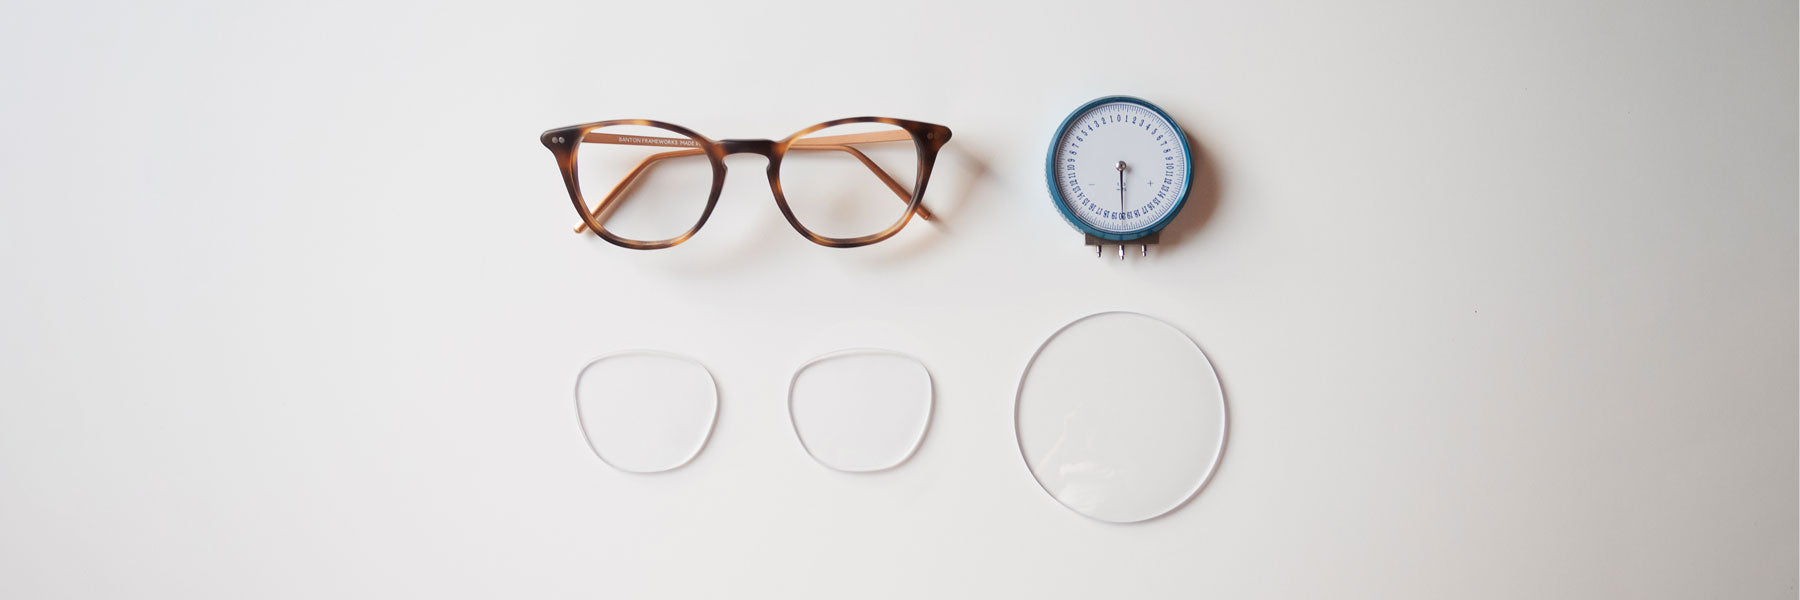 How we fit your prescription lenses